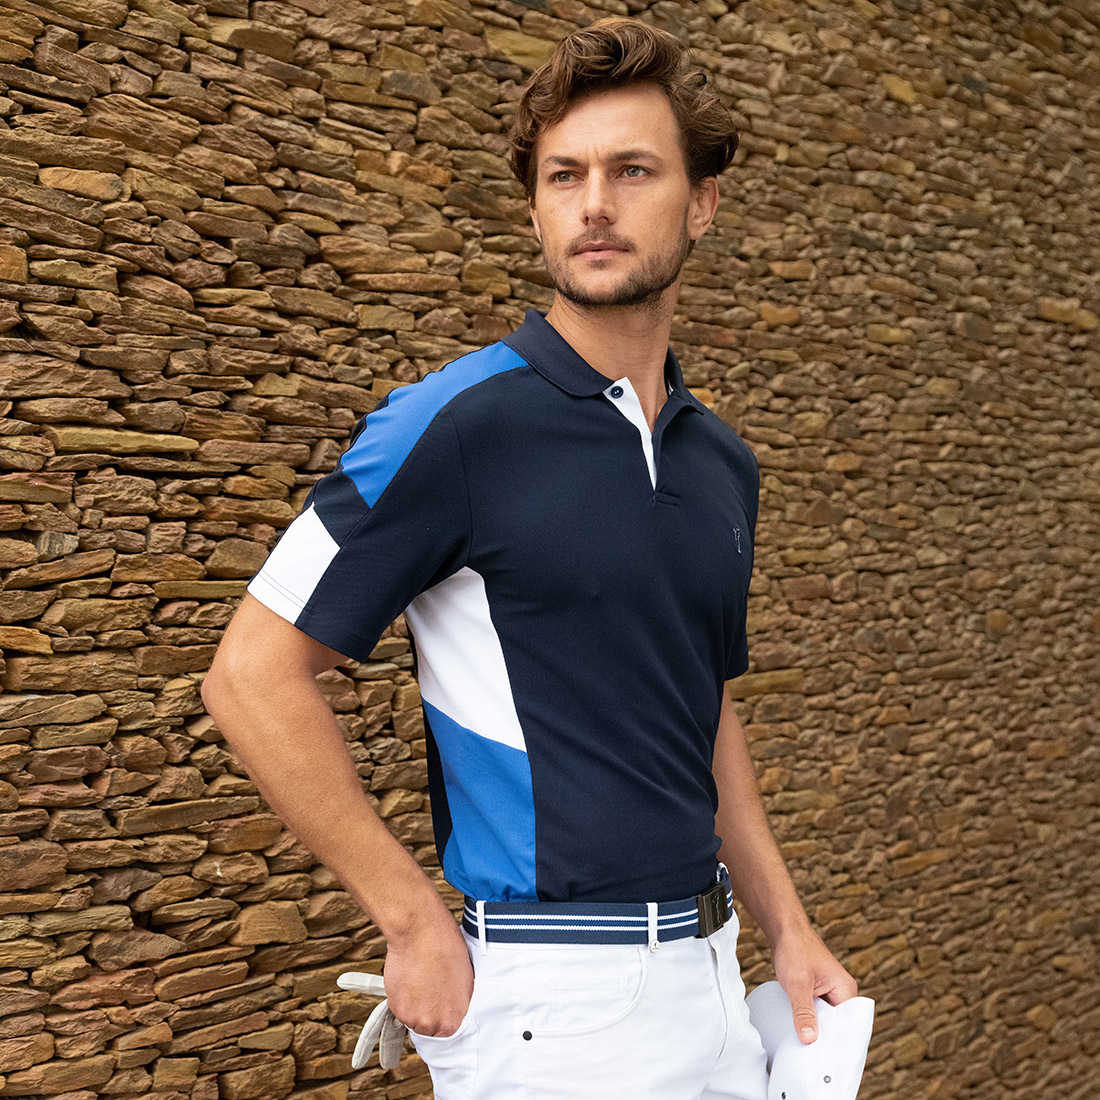 Herren Kurzarm High Tech Performance Golfpolo mit UV-Schutz im Pro-Look